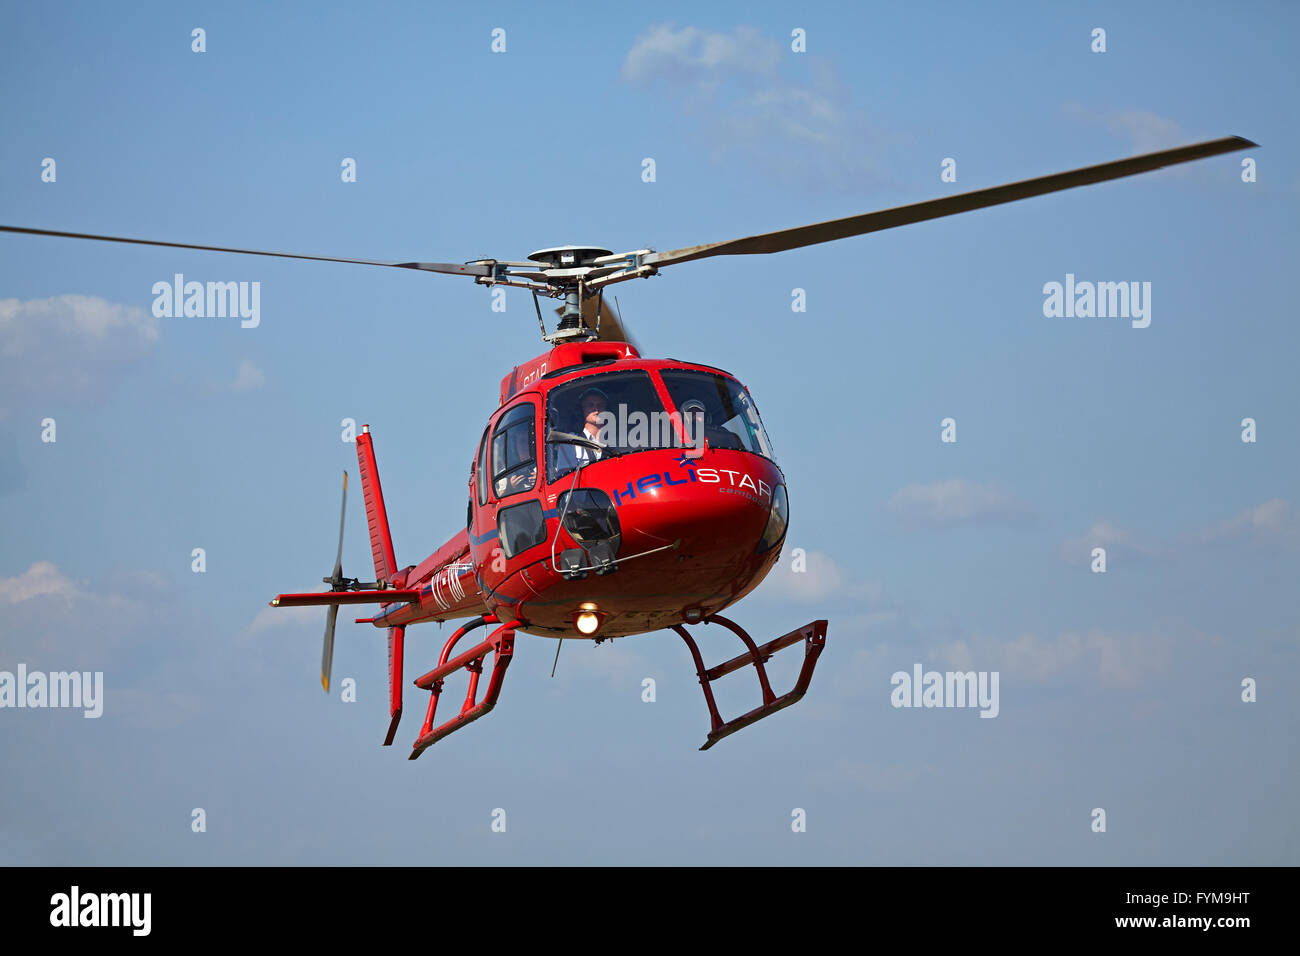 Helistar Eurocopter AS350B2 helicopter doing Angkor Wat flights, Siem Reap, Cambodia Stock Photo